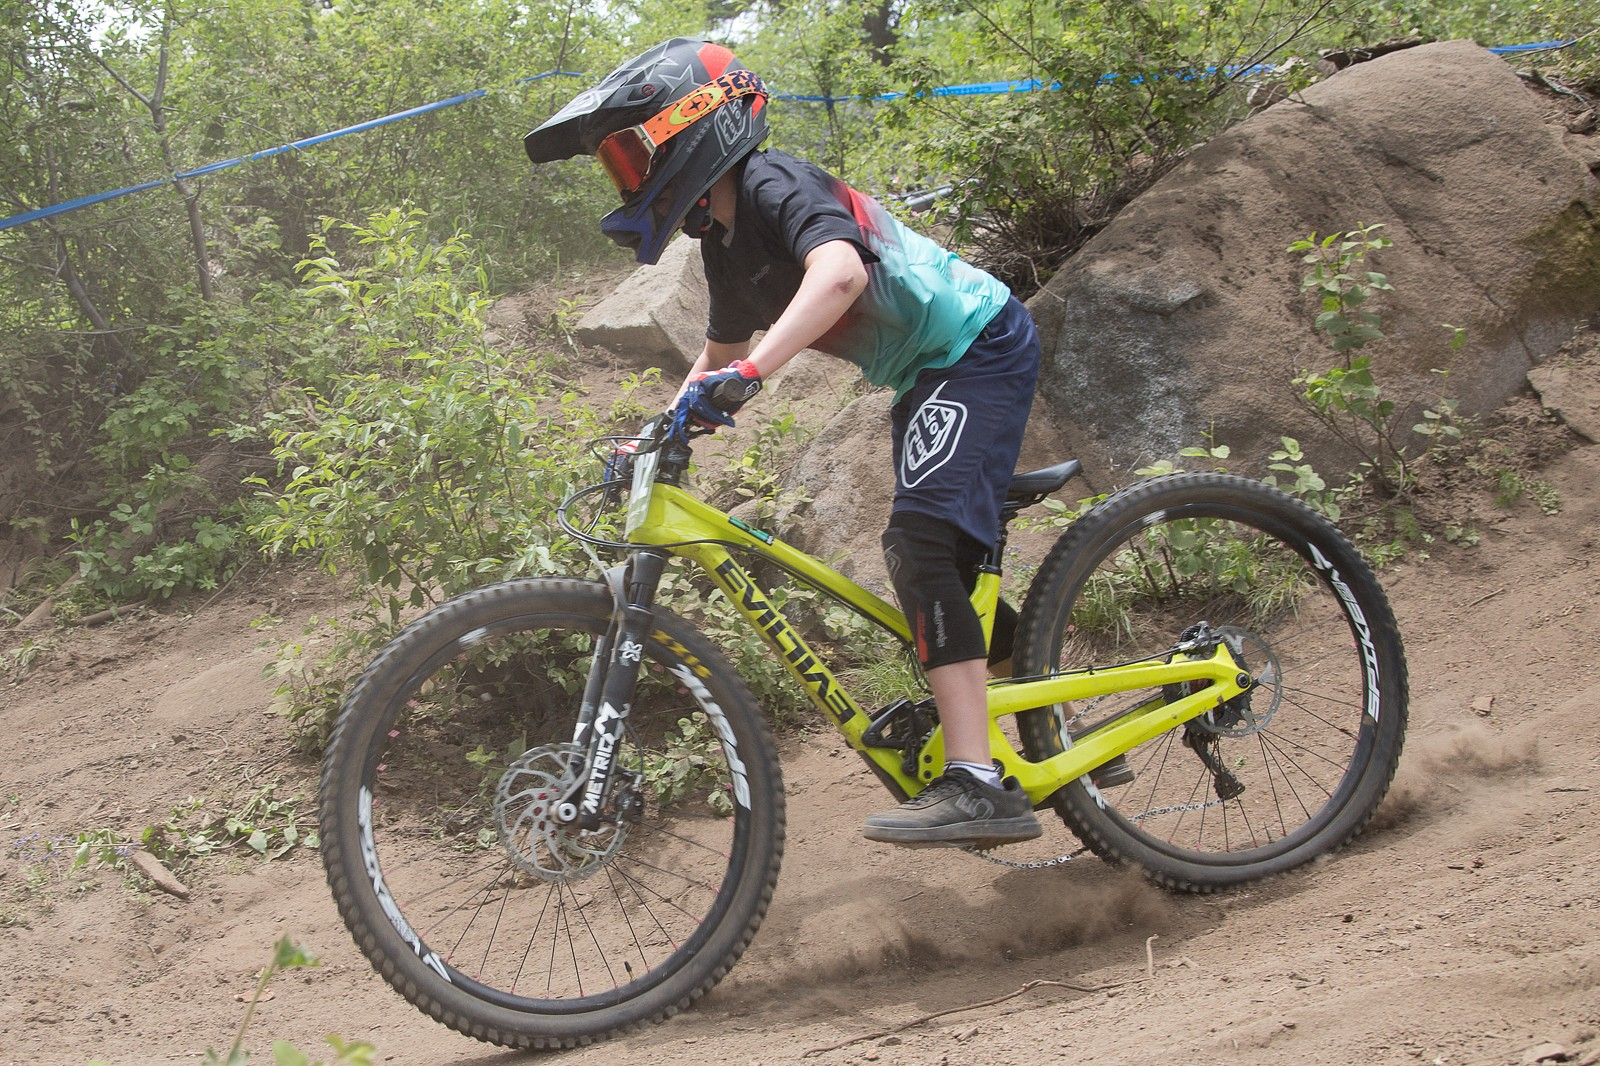 G-Out Project, Tamarack #USDH National-6 - G-Out Project - Tamarack NW Cup / #USDH - Mountain Biking Pictures - Vital MTB